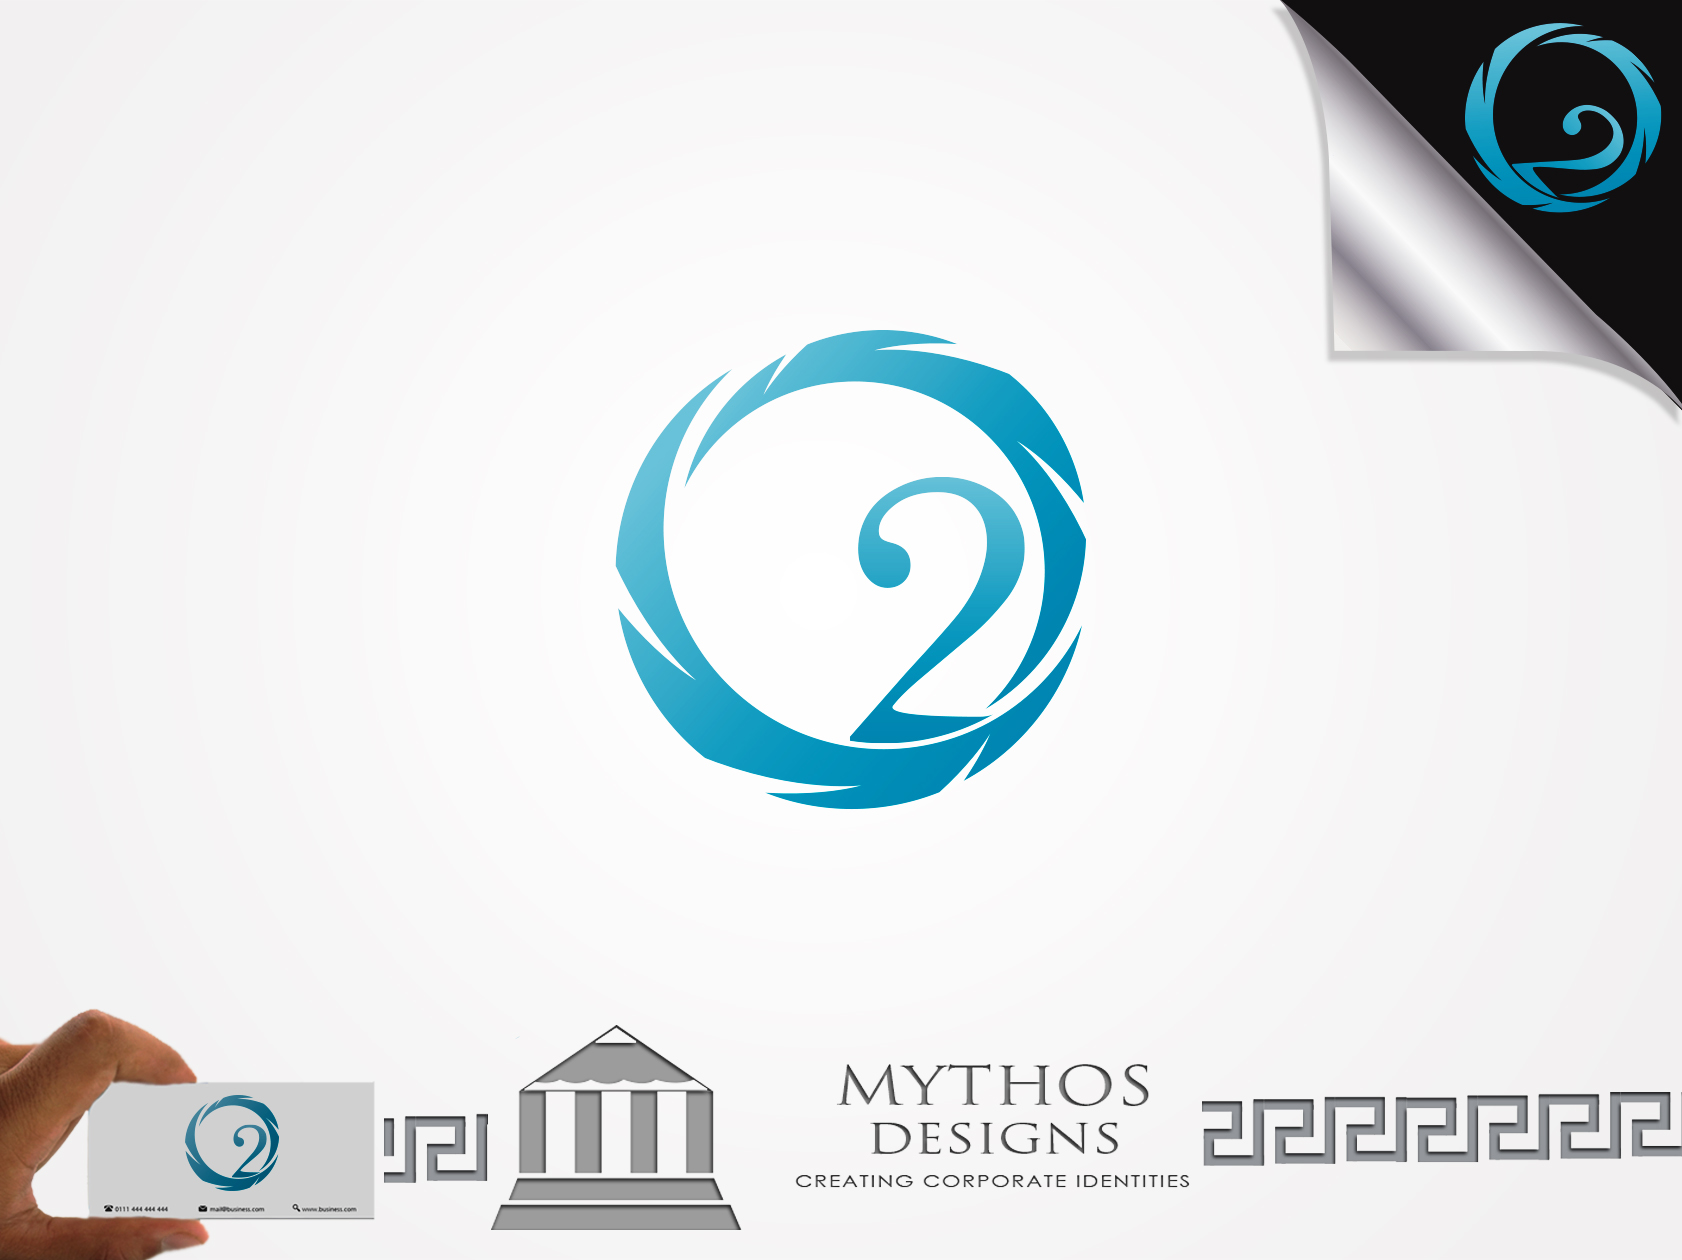 Logo Design by Mythos Designs - Entry No. 47 in the Logo Design Contest Artistic Logo Design for O2.